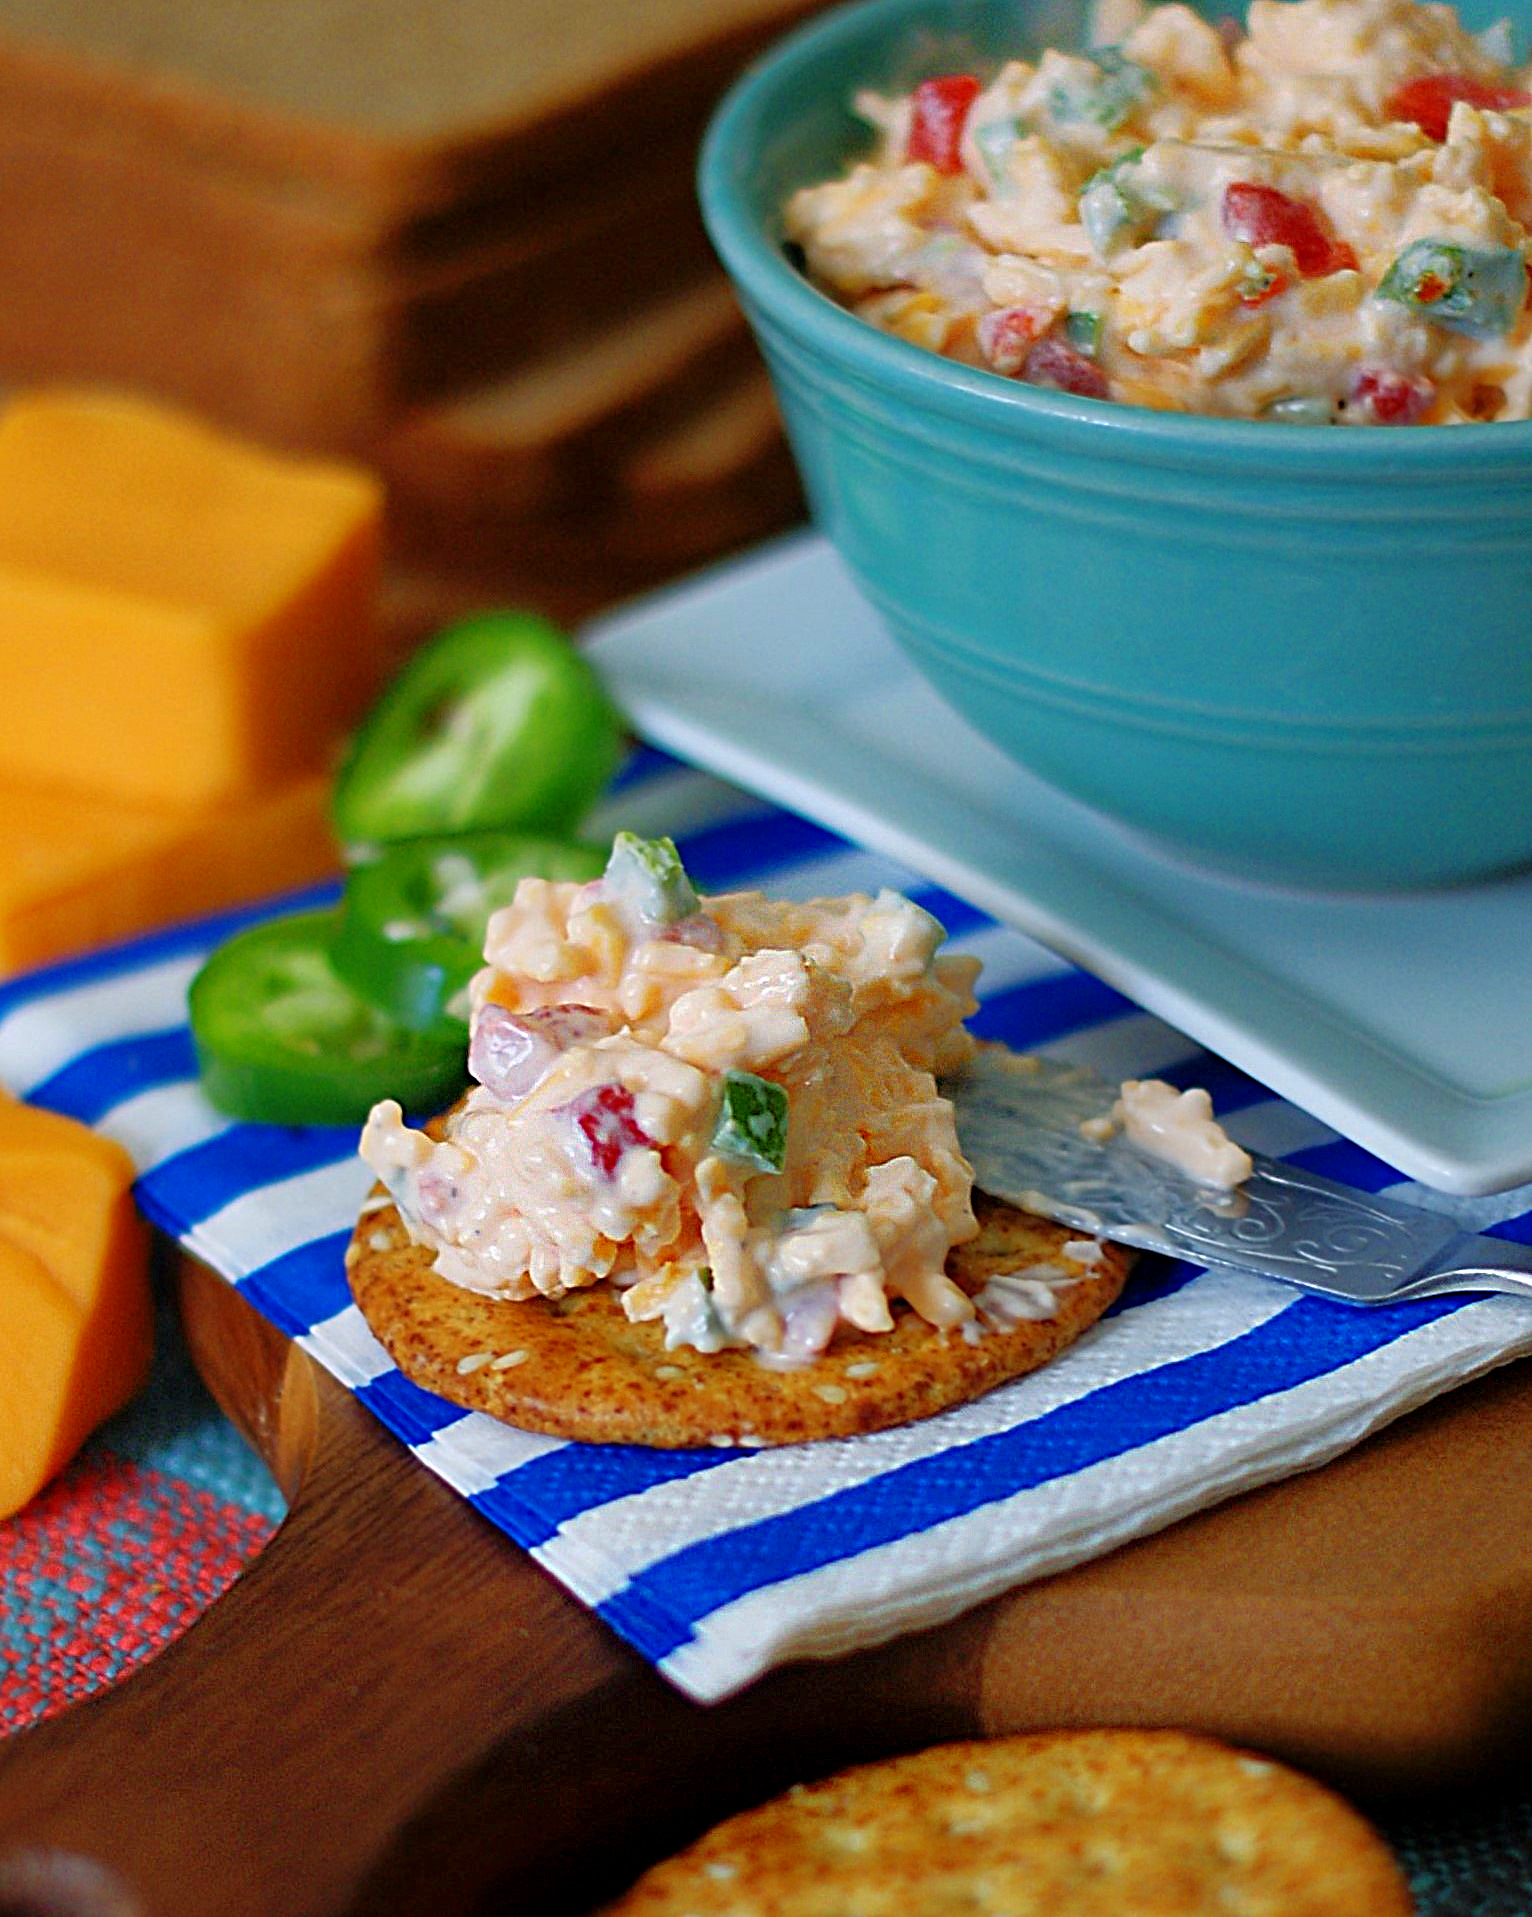 Jalapeno Pimento Cheese served on a cracker.